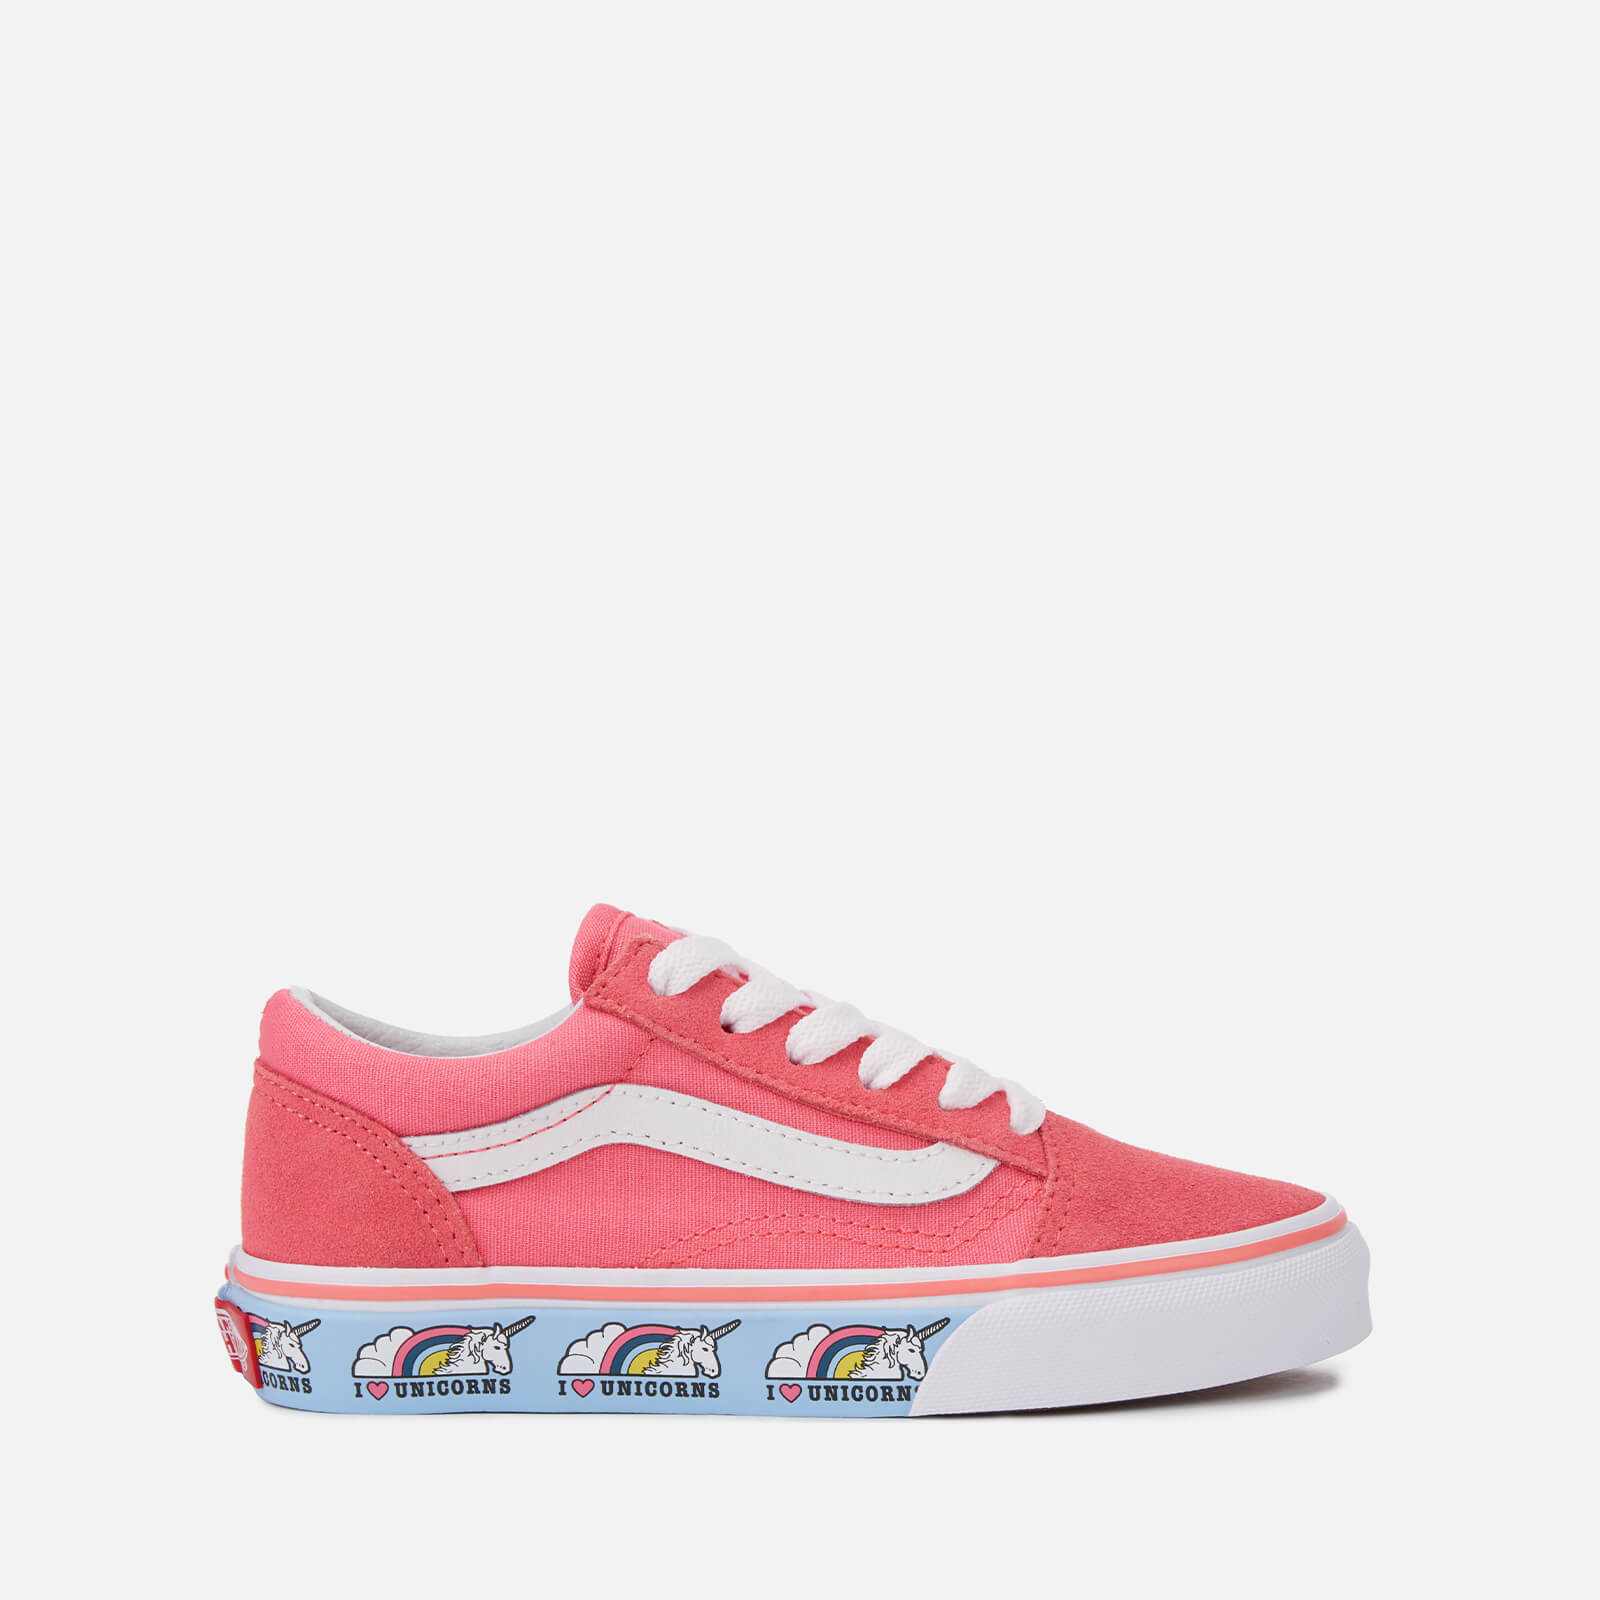 f2283e2ca Vans Kids' Unicorn Old Skool Trainers - Strawberry Pink/True White | FREE  UK Delivery | Allsole